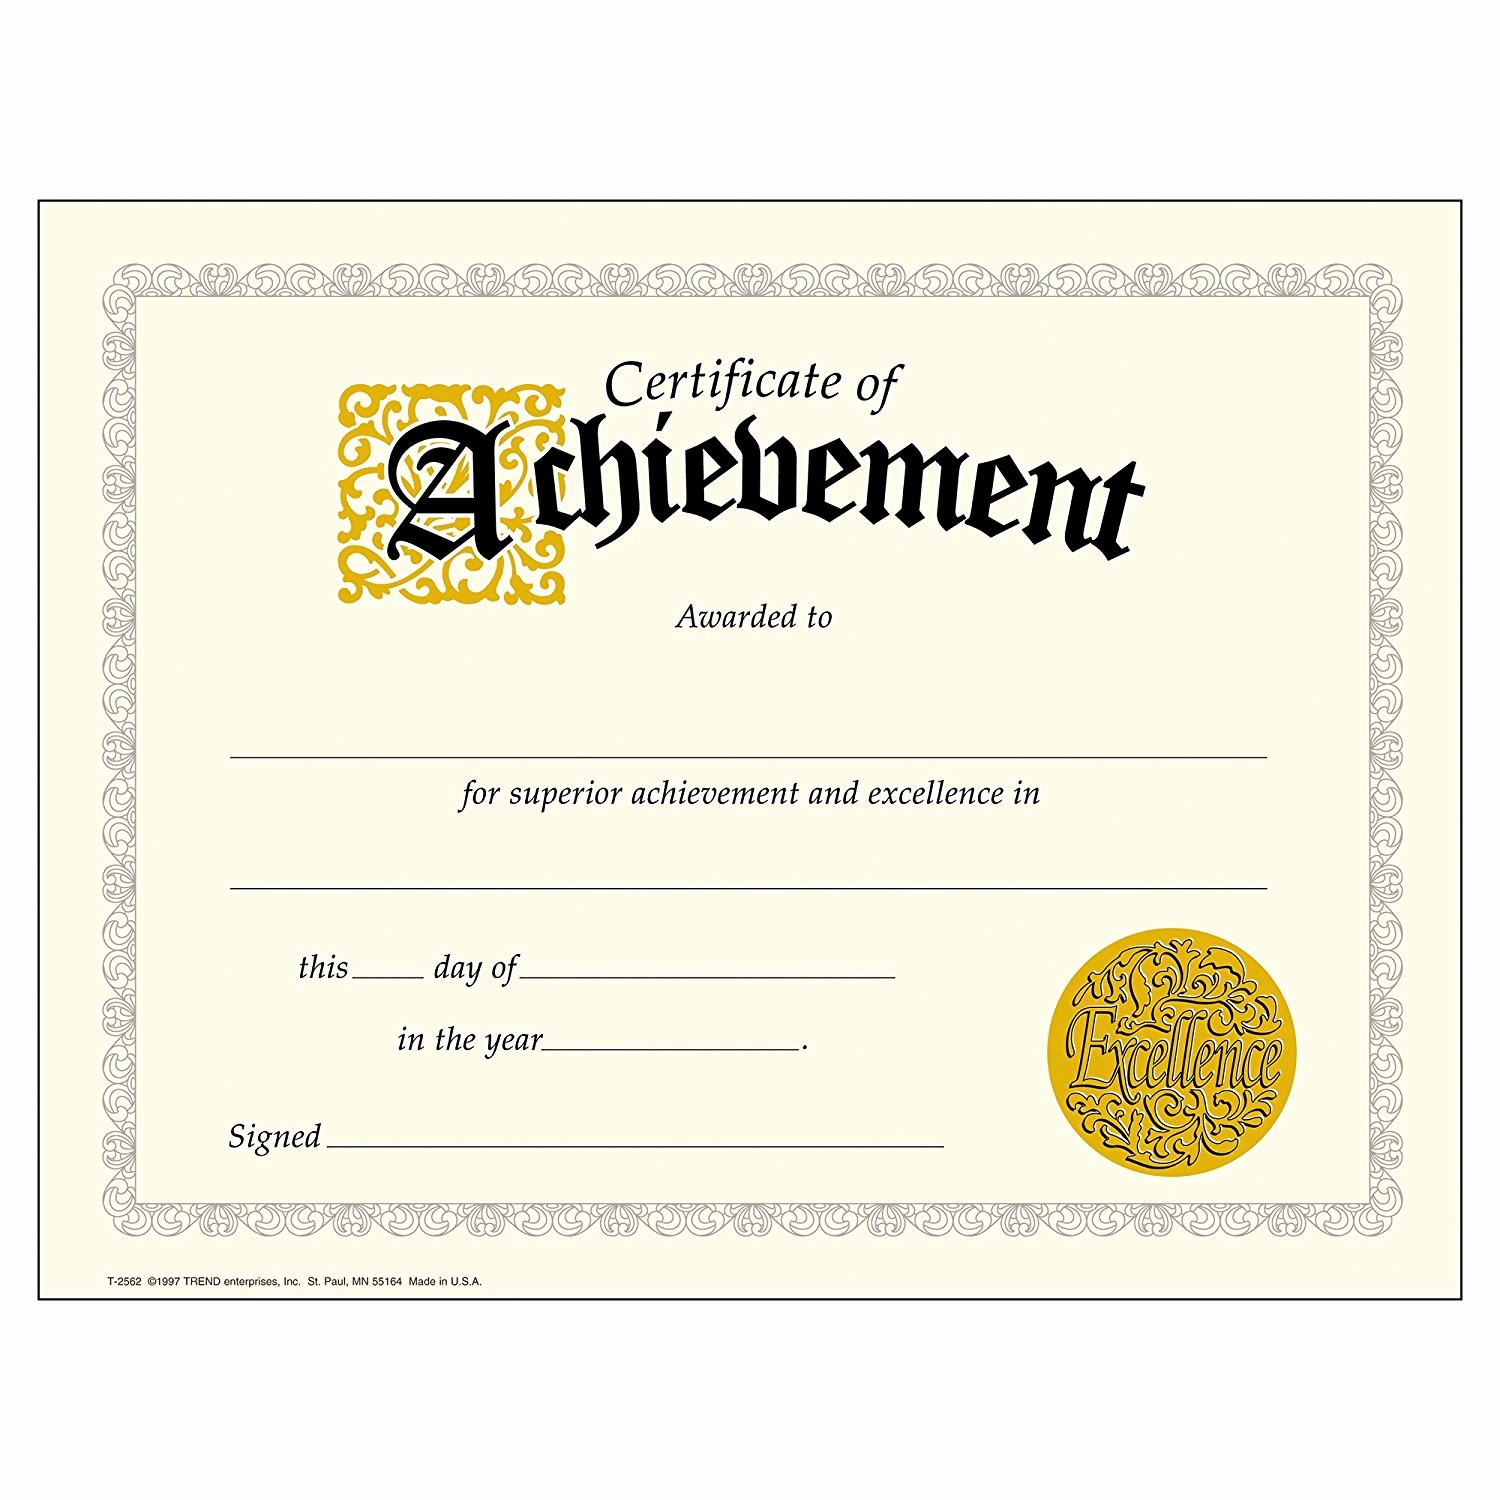 Samples Of Certificate Of Achievement Inspirational Pdf Achievement Certificates Templates Free